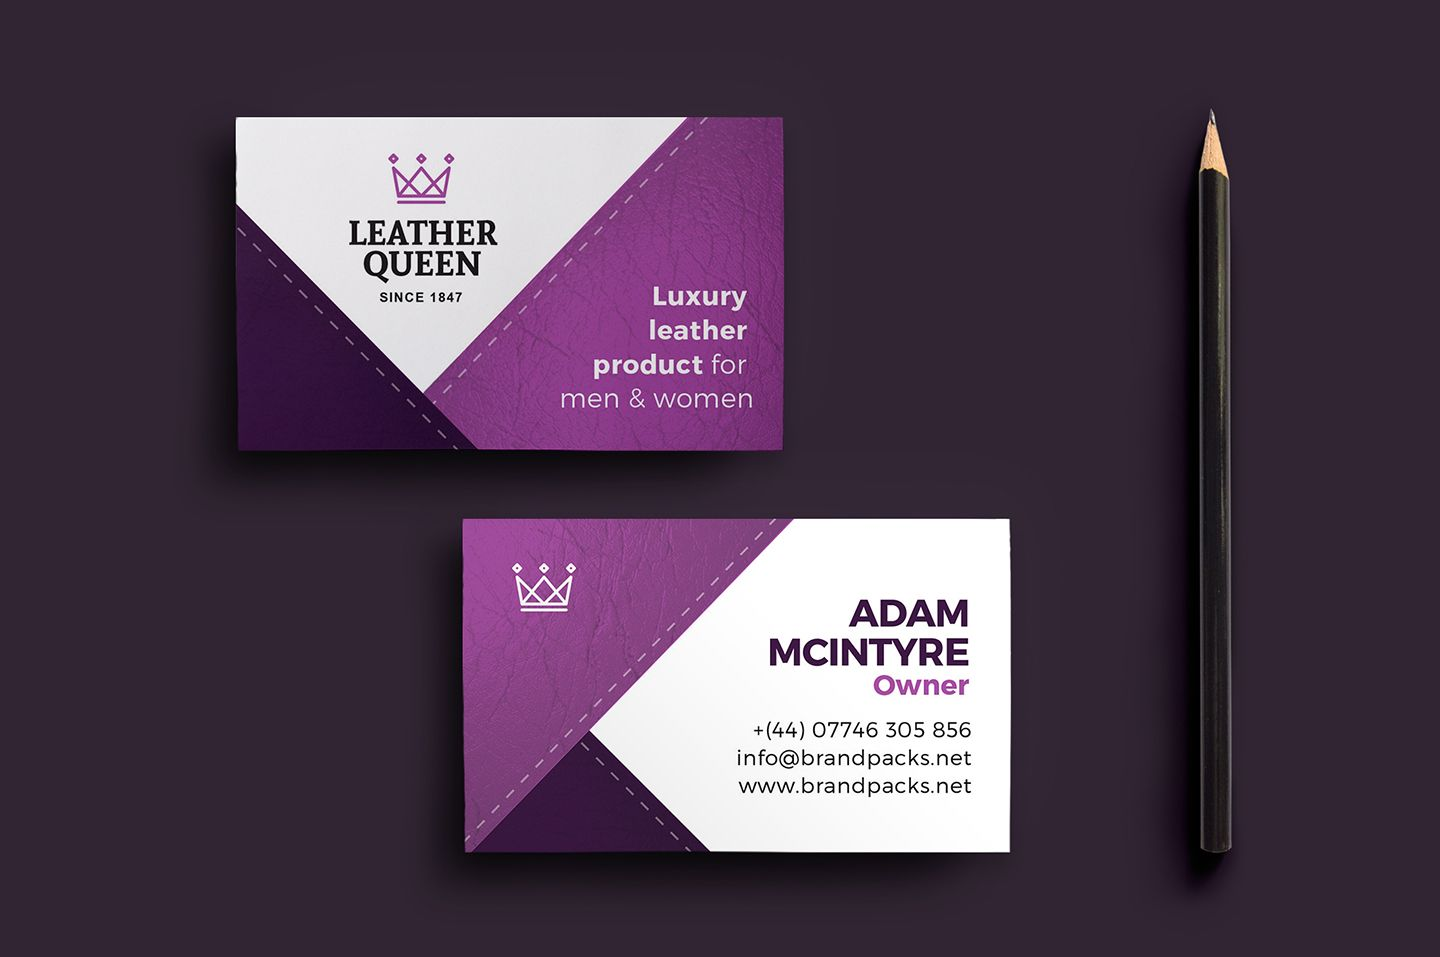 Free business card template for local shop owners works with free business card template for local shop owners works with adobephotoshop adobeillustrator reheart Choice Image